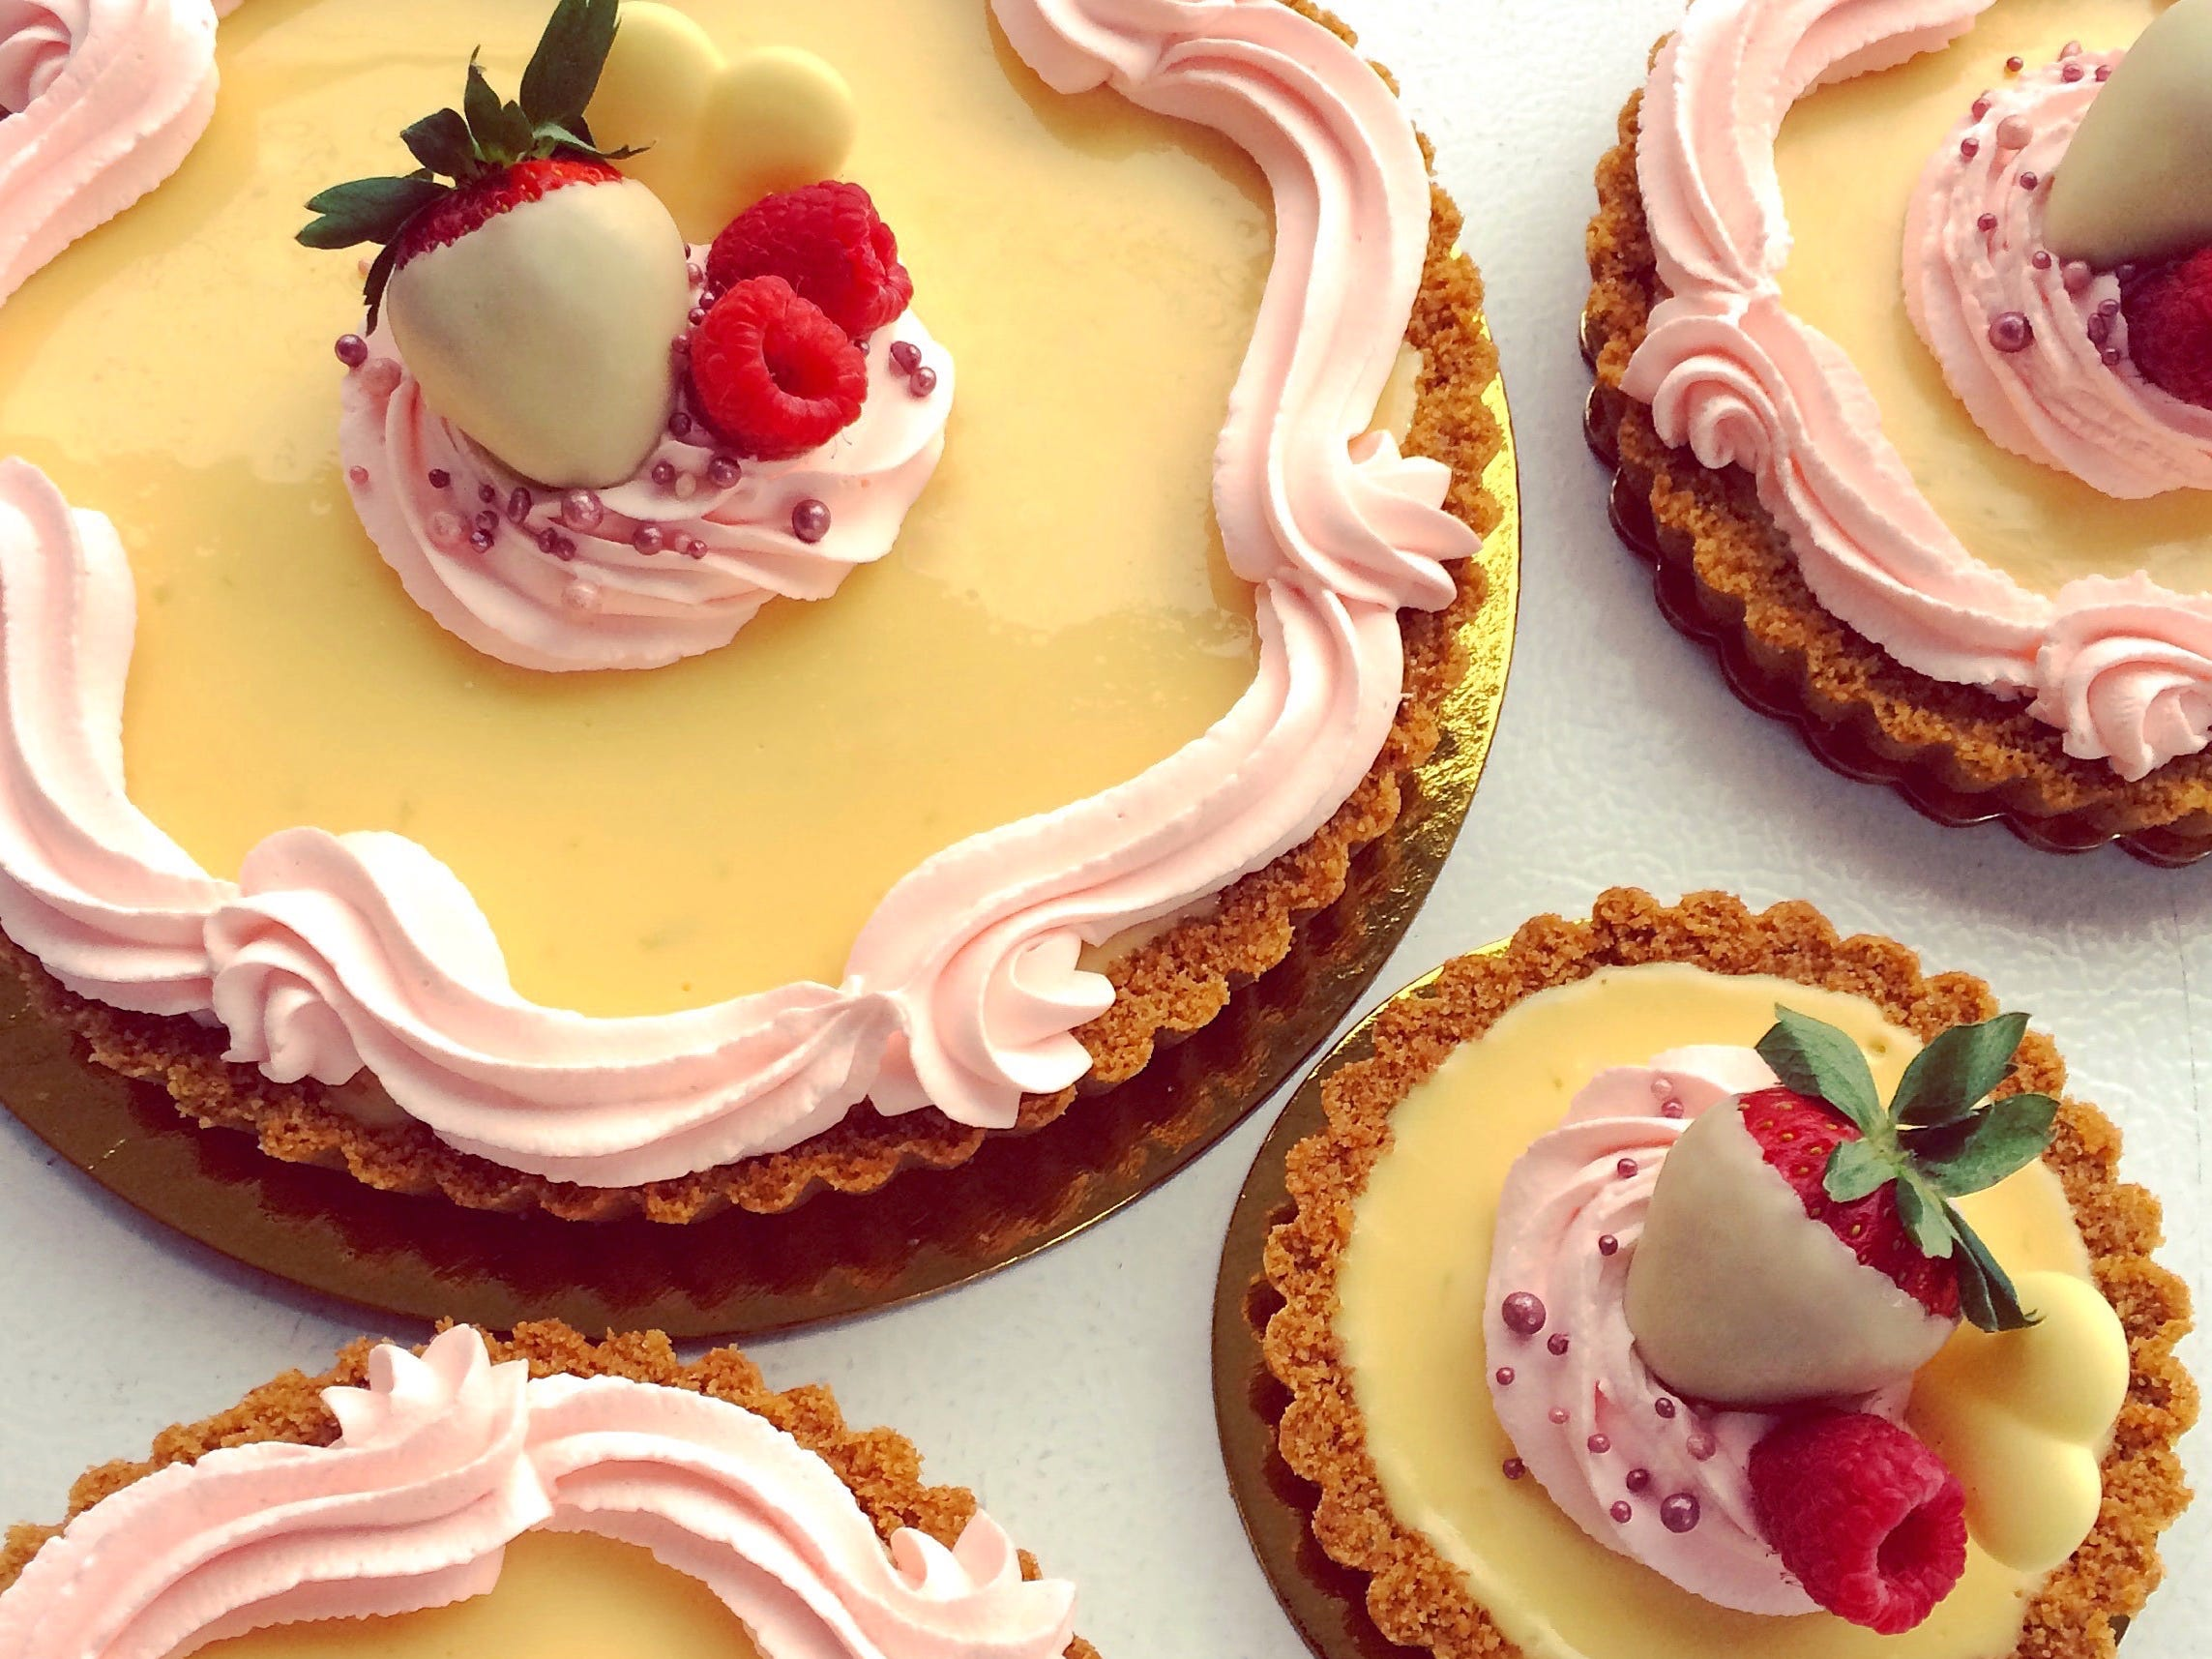 The Valentine's Day Key Lime Tart  from The Flaky Tart in Atlantic Highlands.